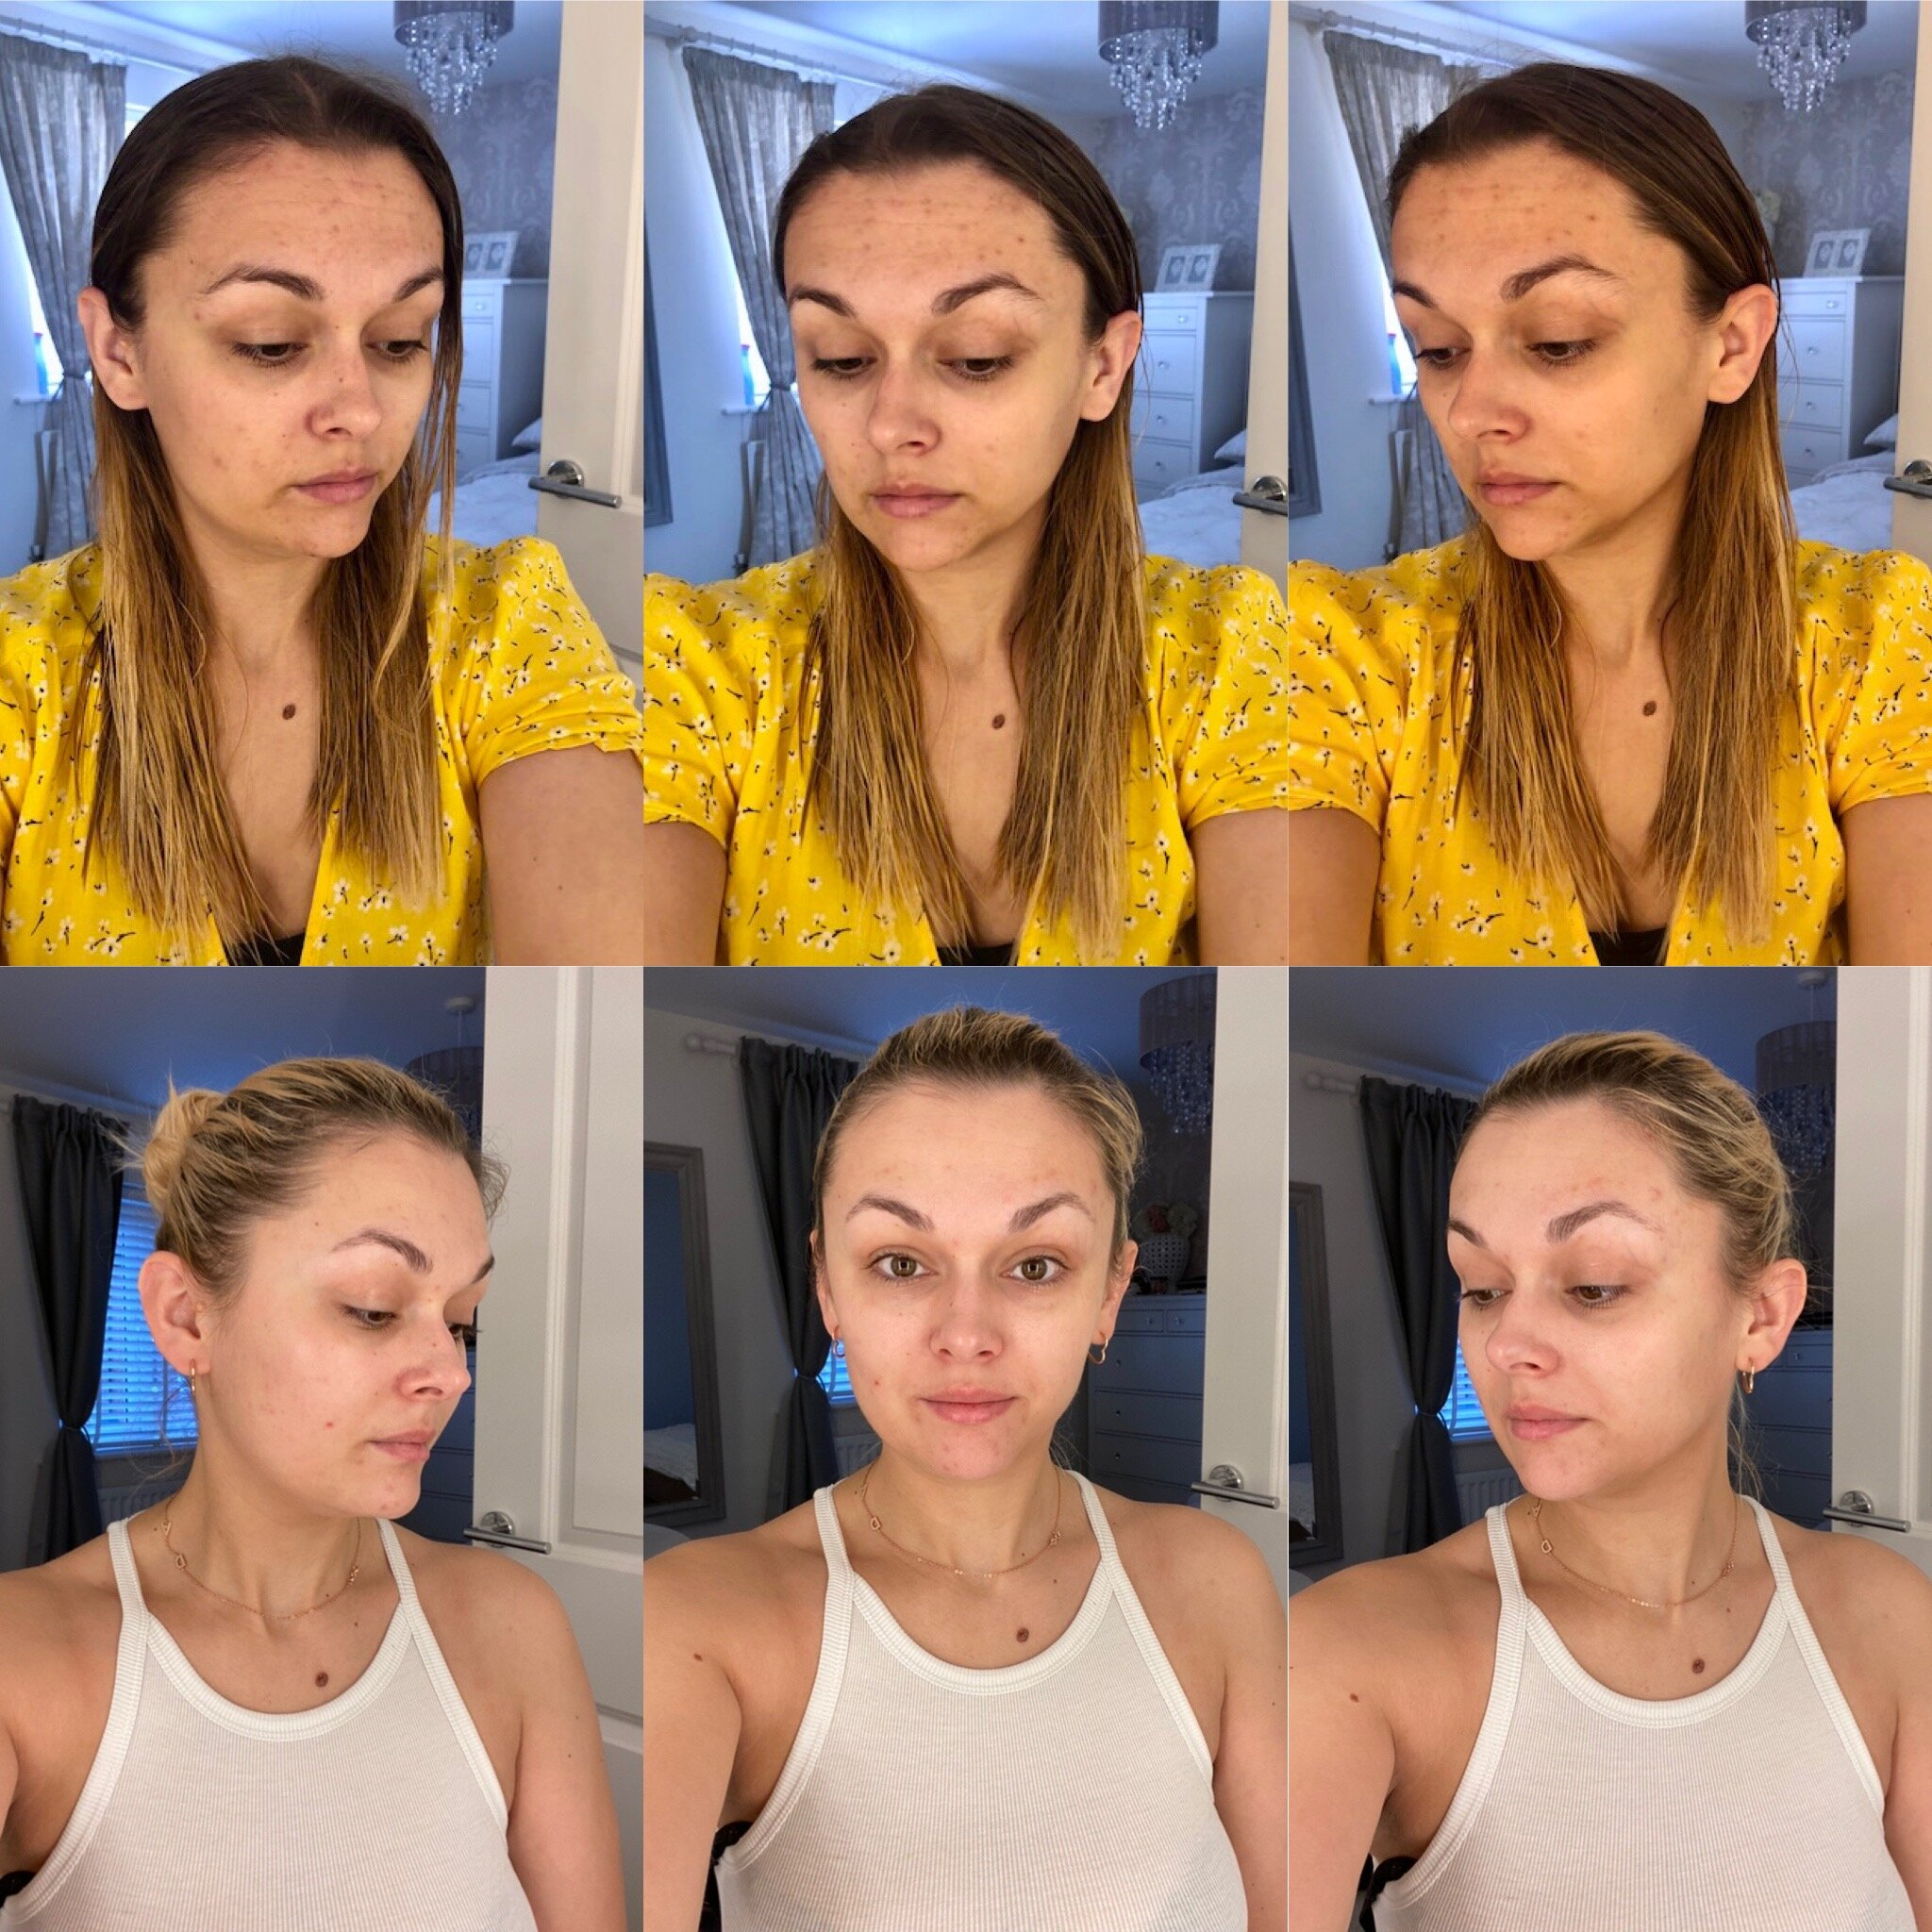 Skincare Routine, Regime, Before and After, Skin Niacinamide, Products